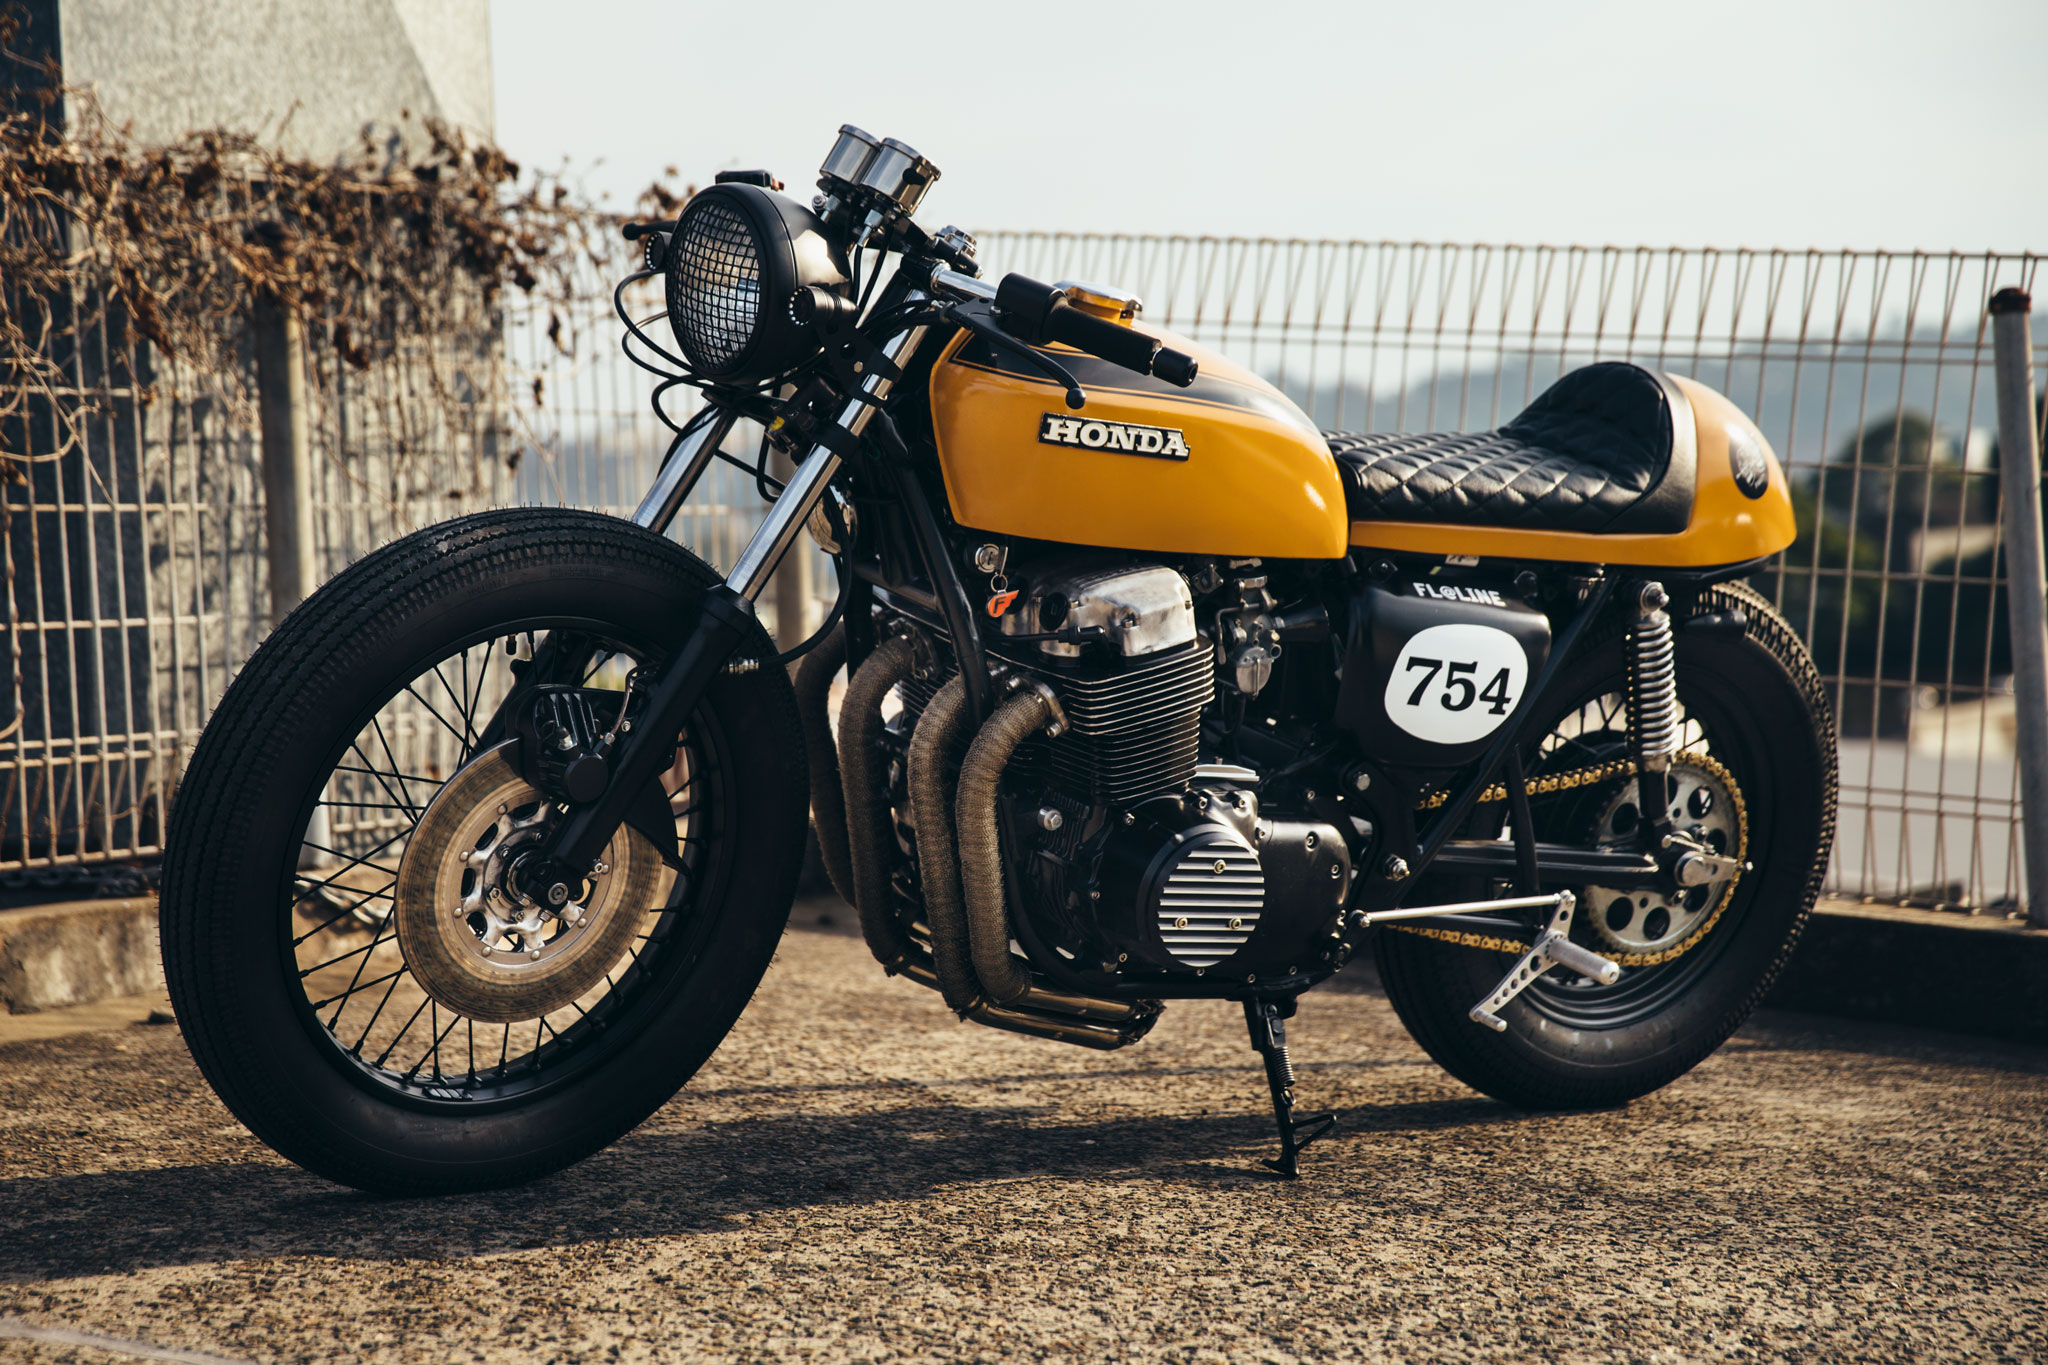 Préférence Julian's Honda CB750 Cafe Racer | Throttle Roll TL35